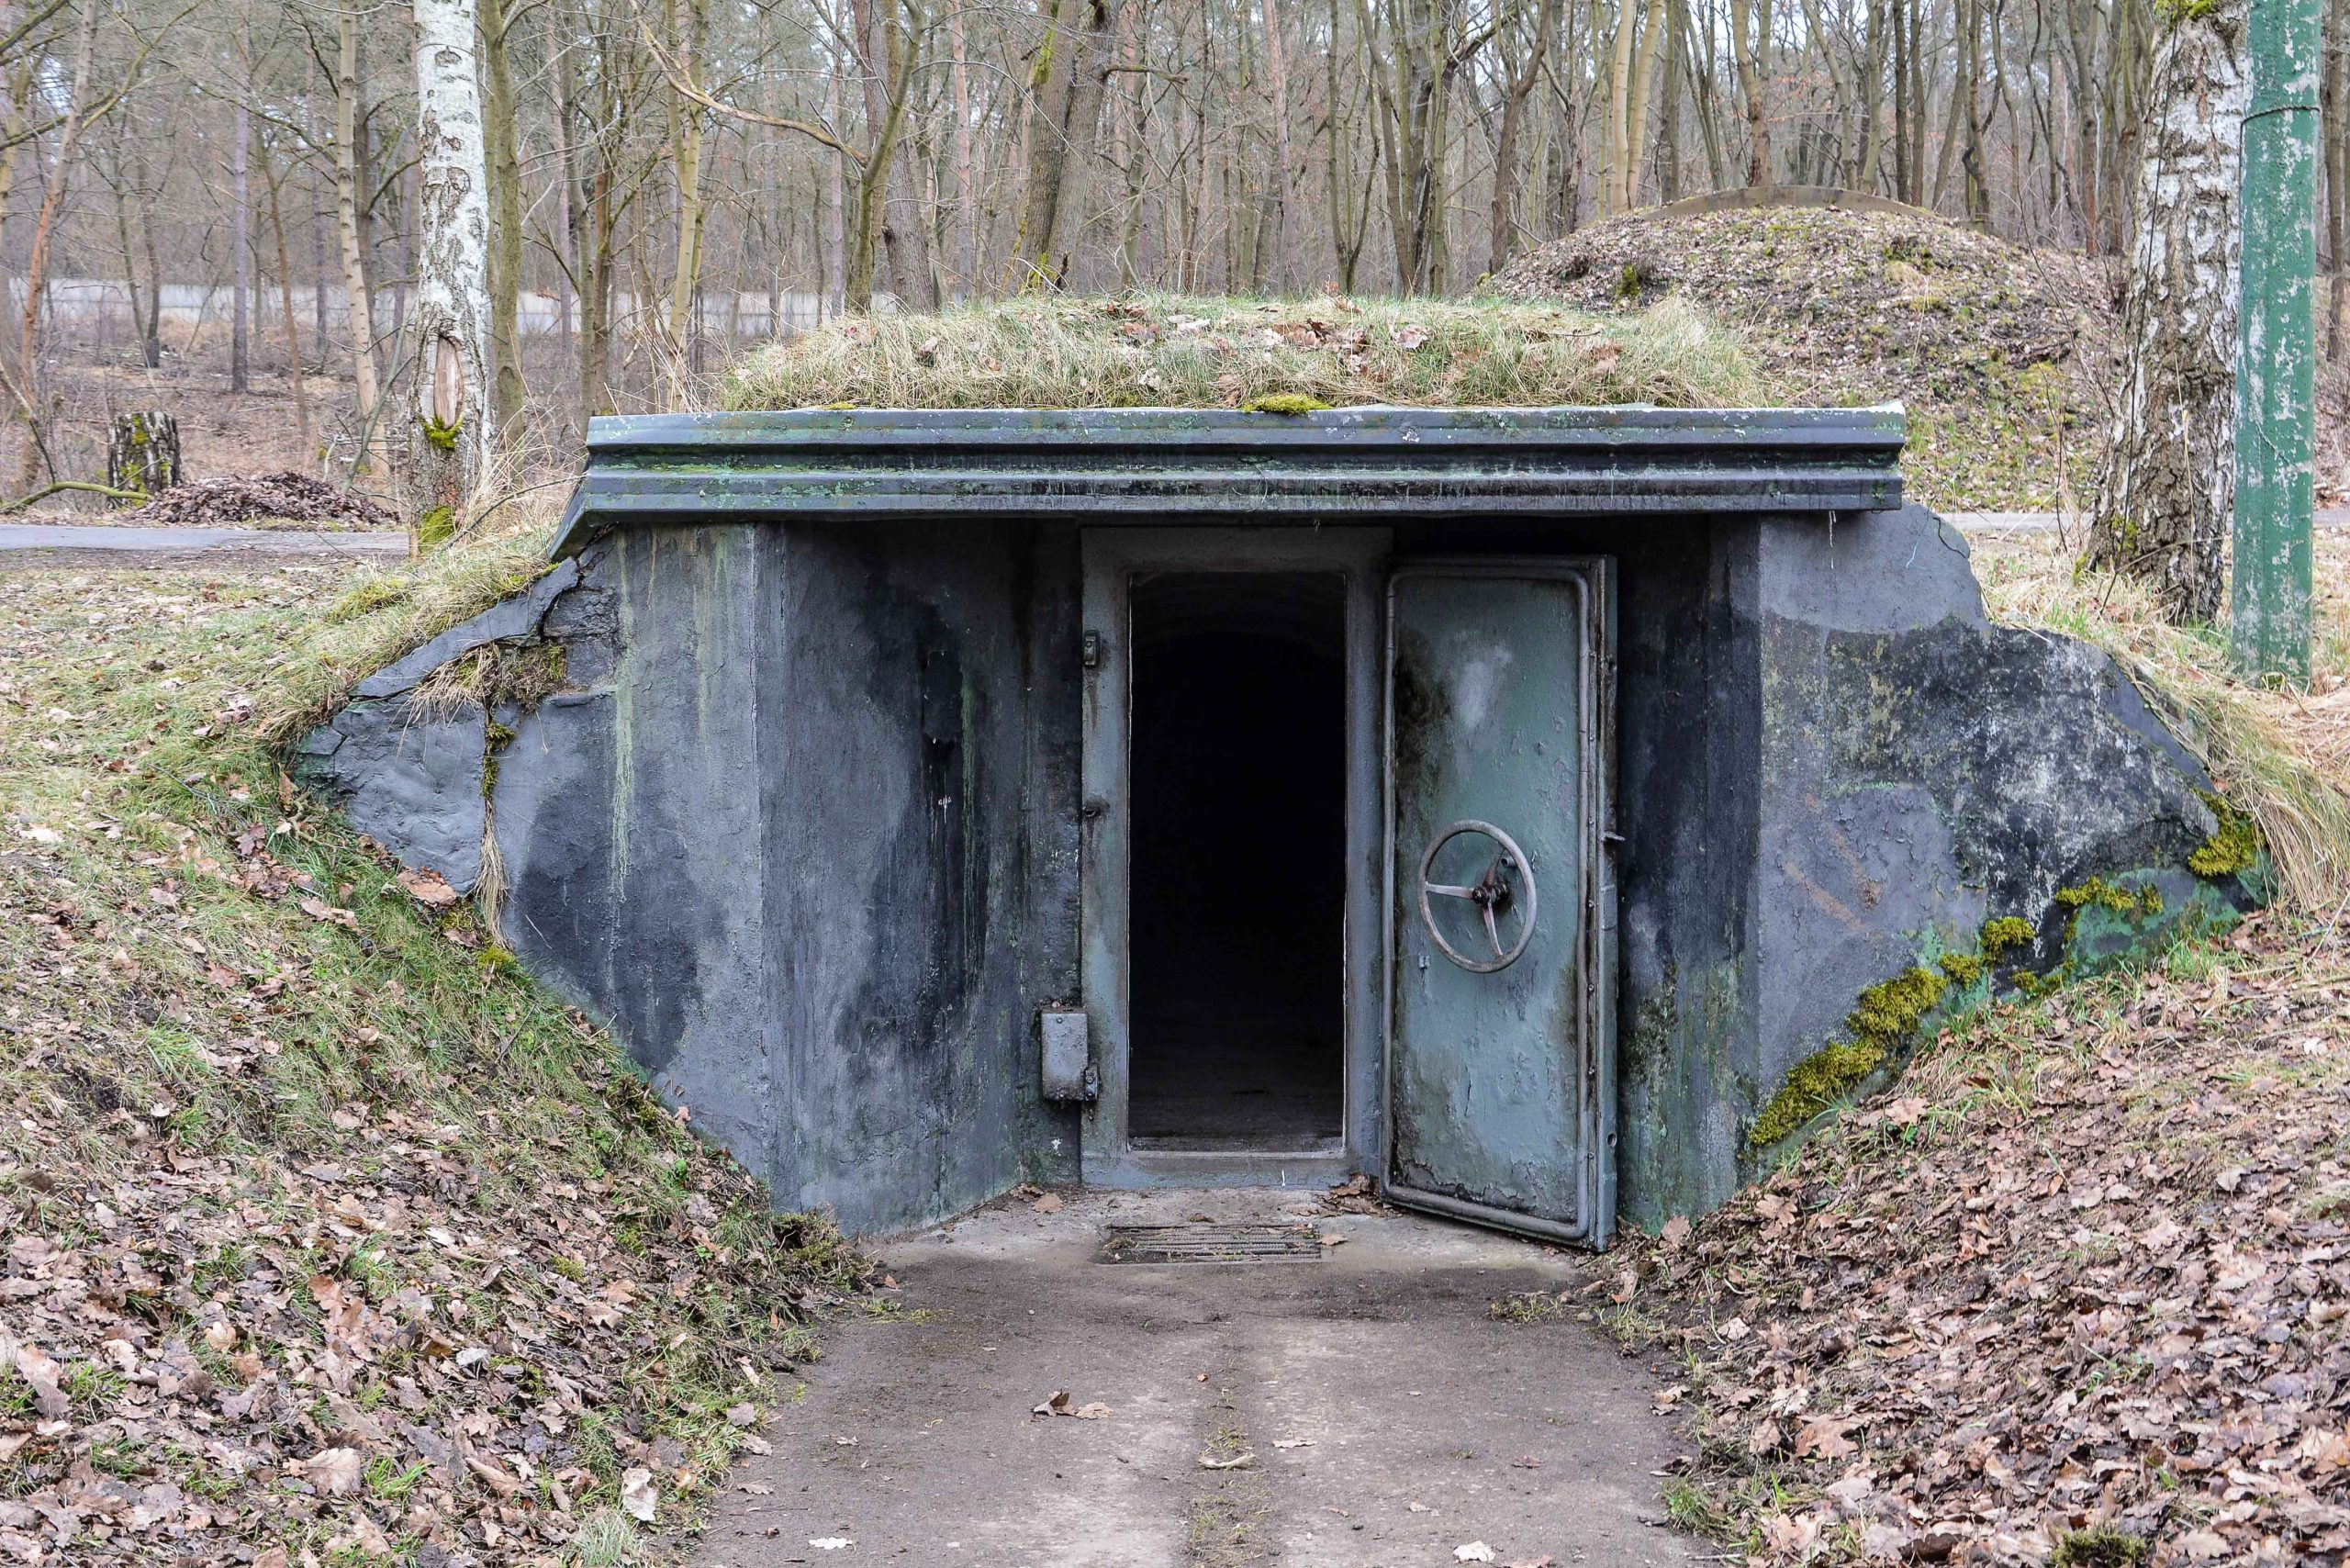 small soviet bunker entrance bunker zeppelin amt 500 maybach bunker ranet wehrmacht sowjet soviet military zossen brandenburg germany lost palces urbex abandoned